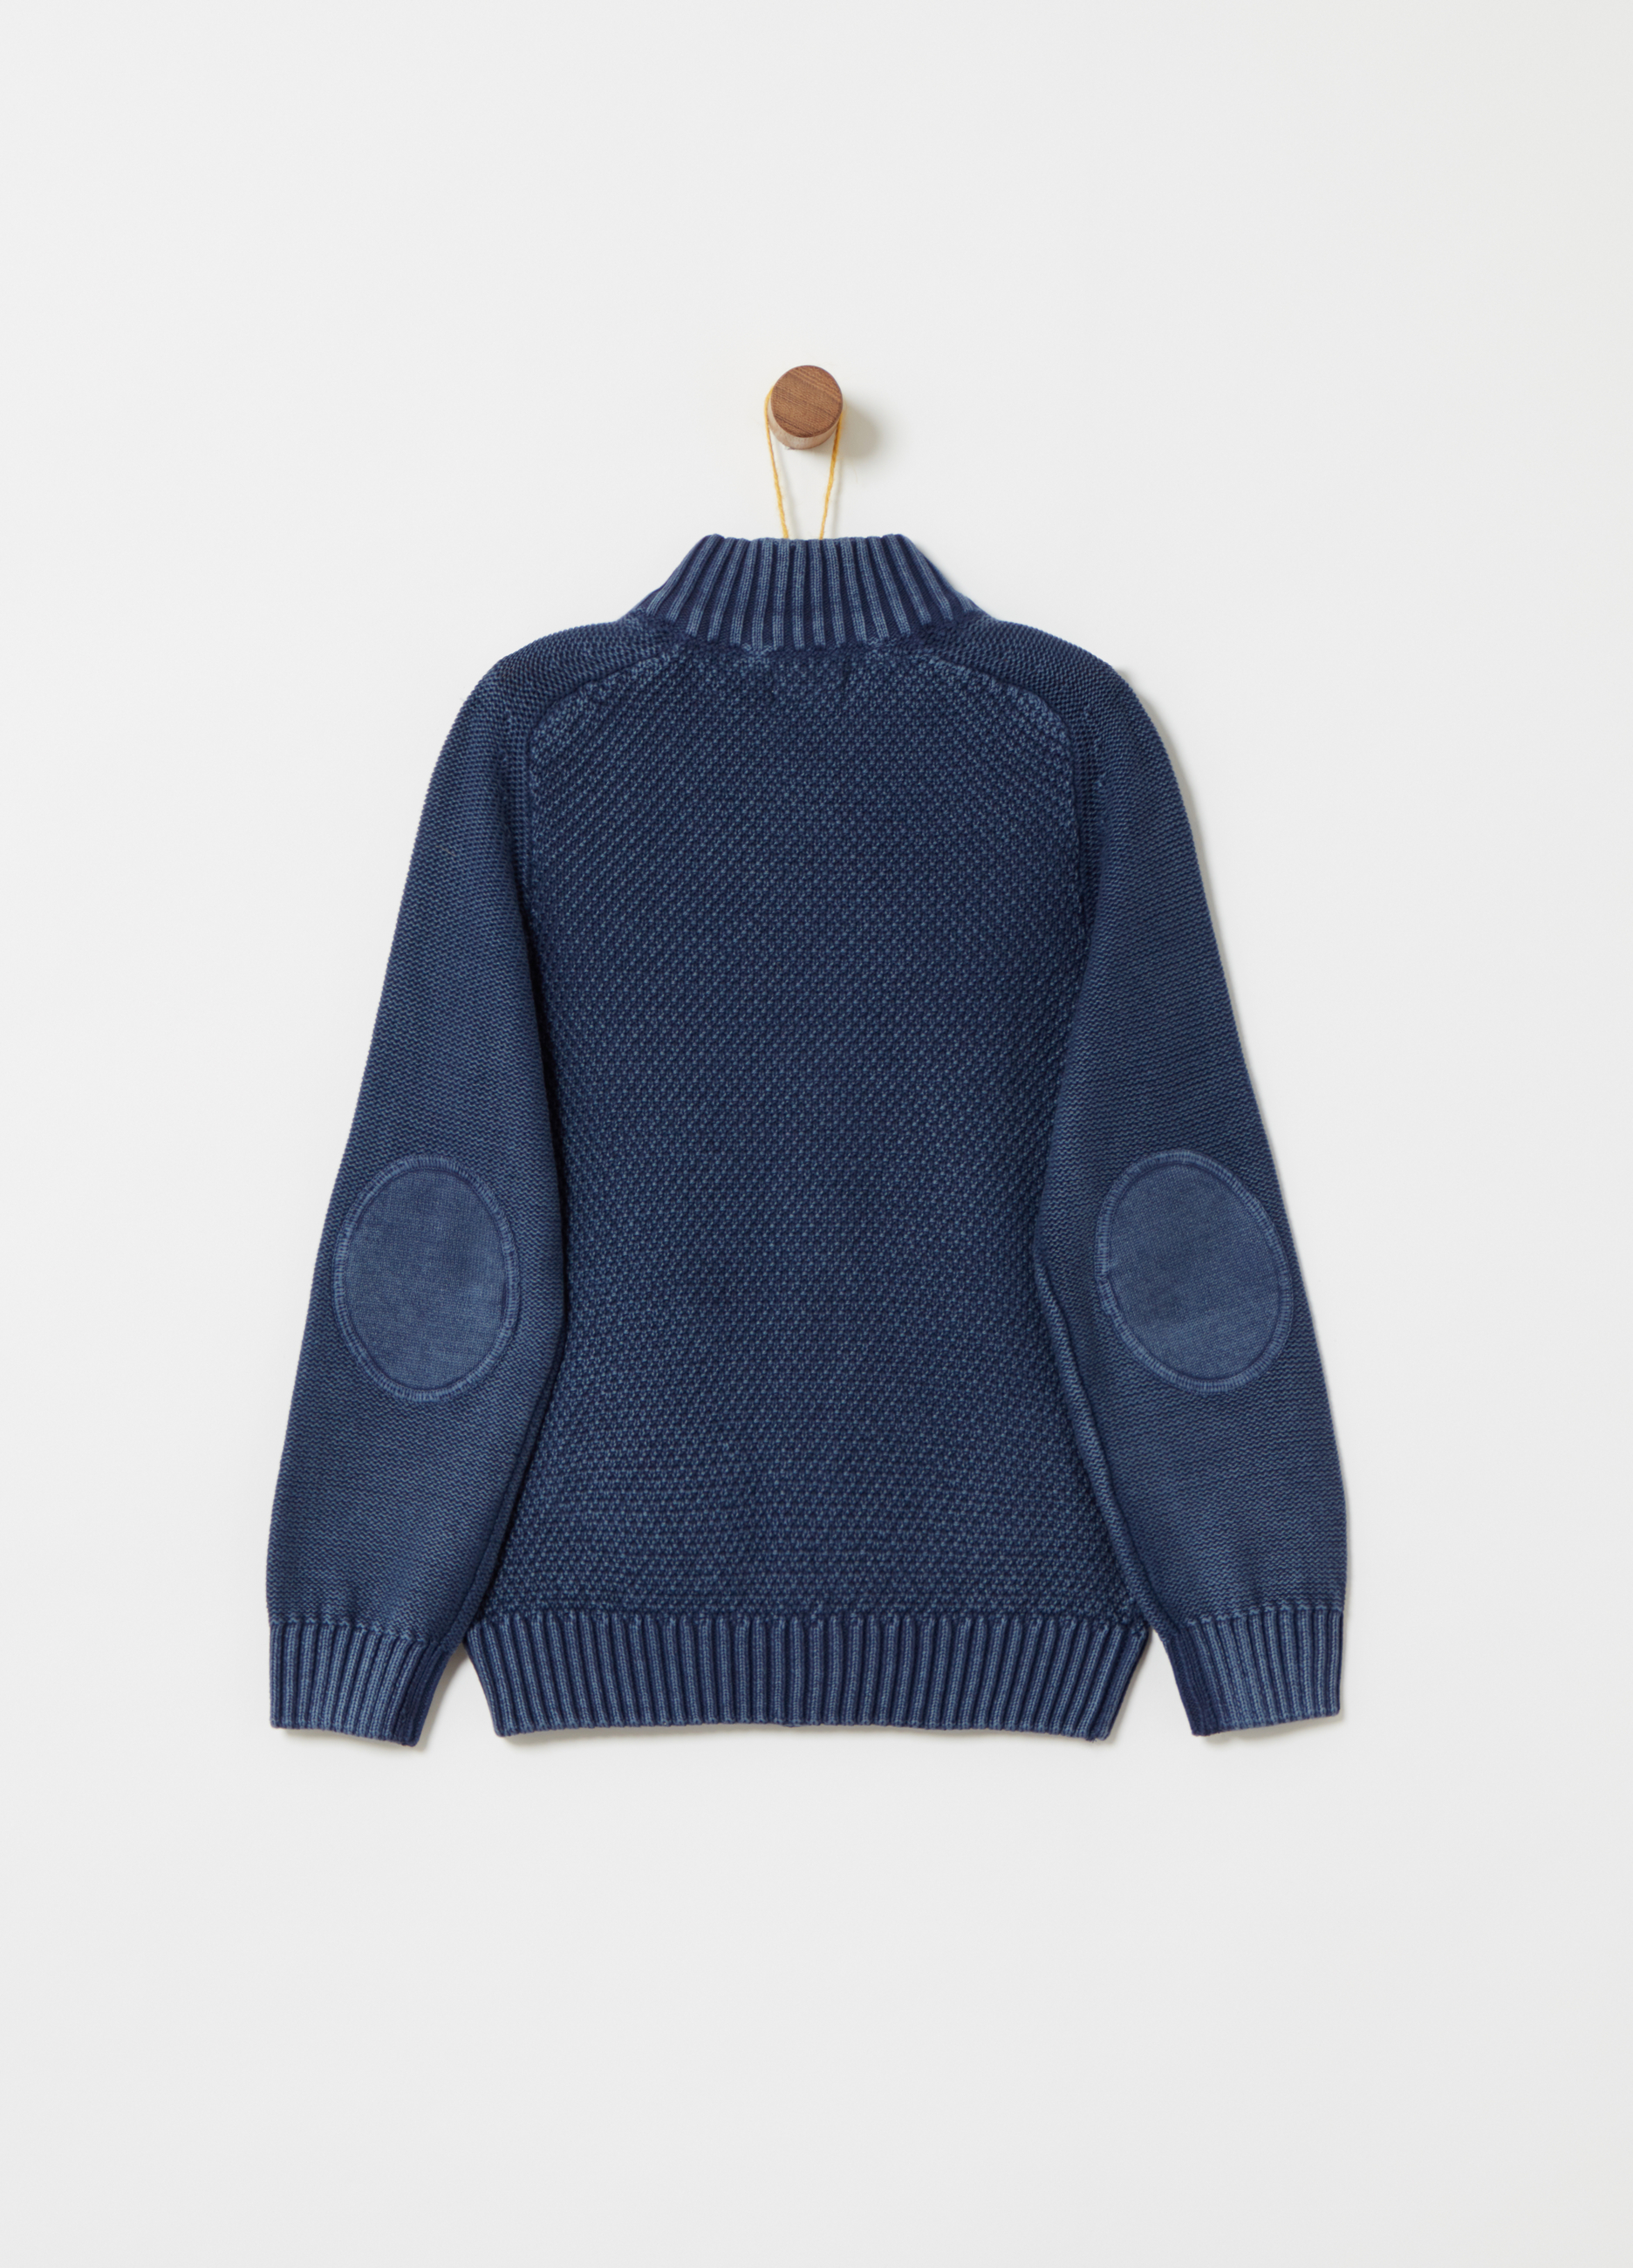 7e6c0ed75041 Knitted cardigan with raglan sleeves and pockets